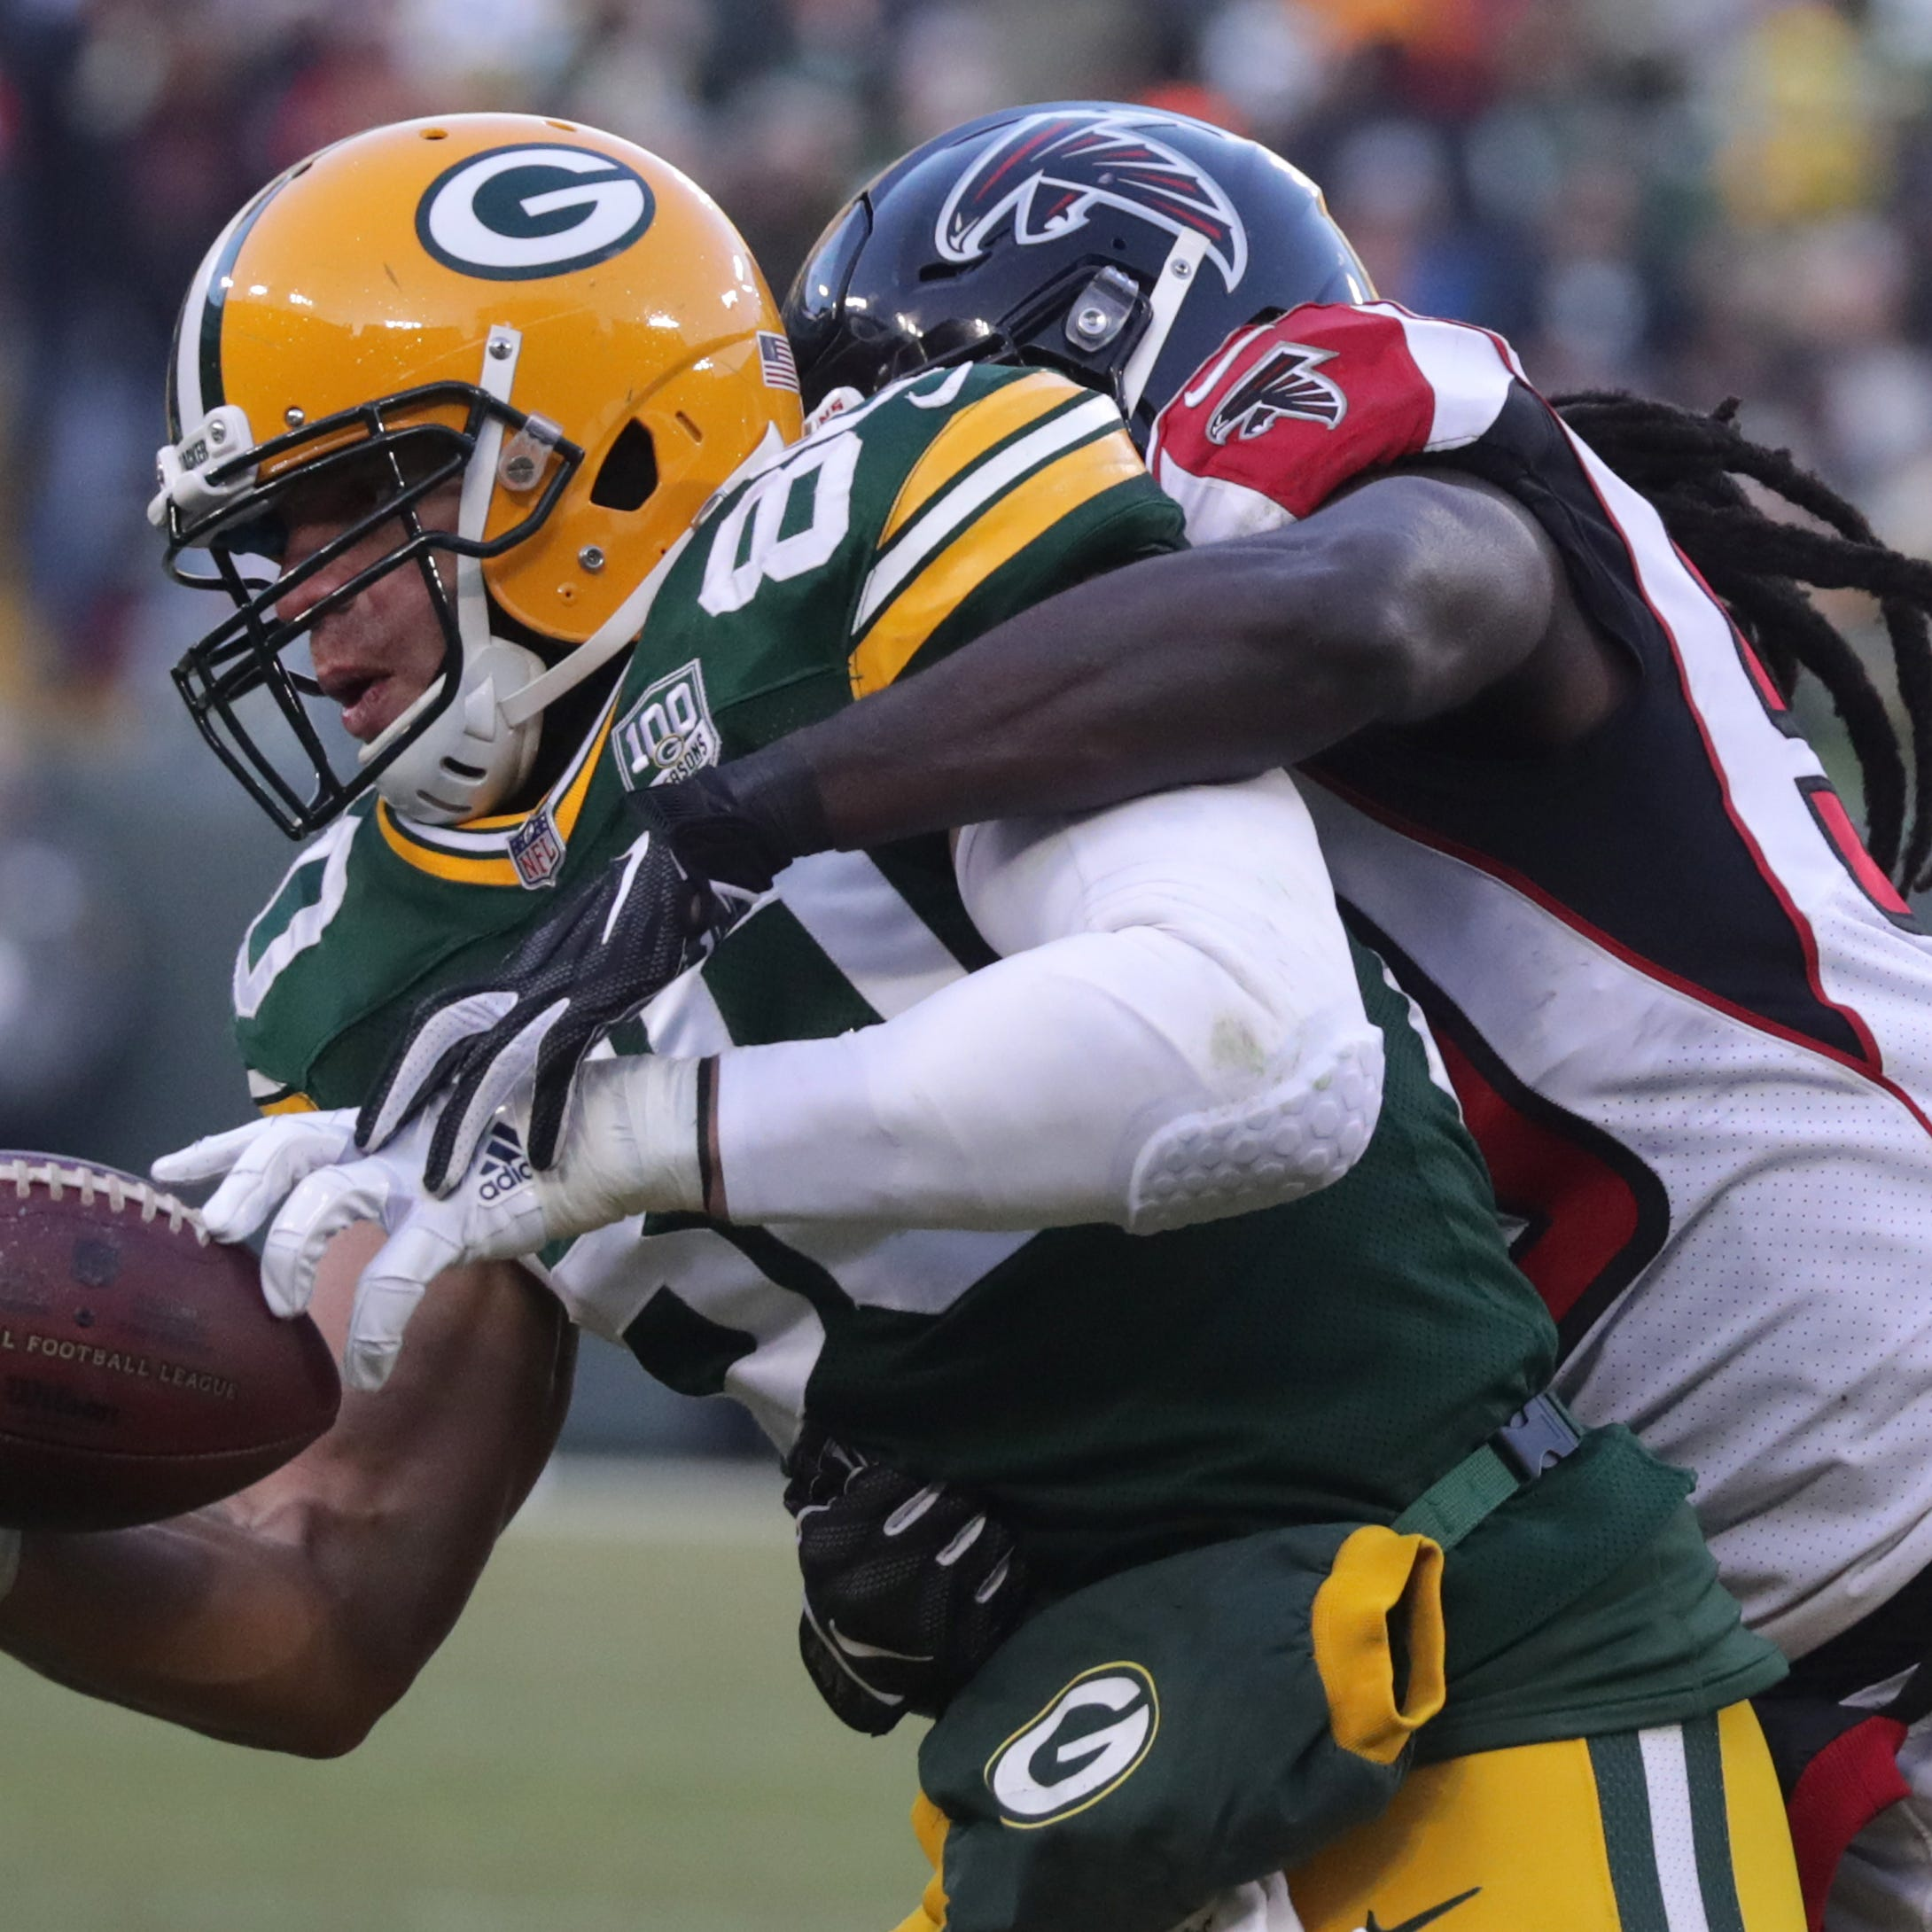 4 Downs: Packers tight end Jimmy Graham ineffective playing with broken thumb